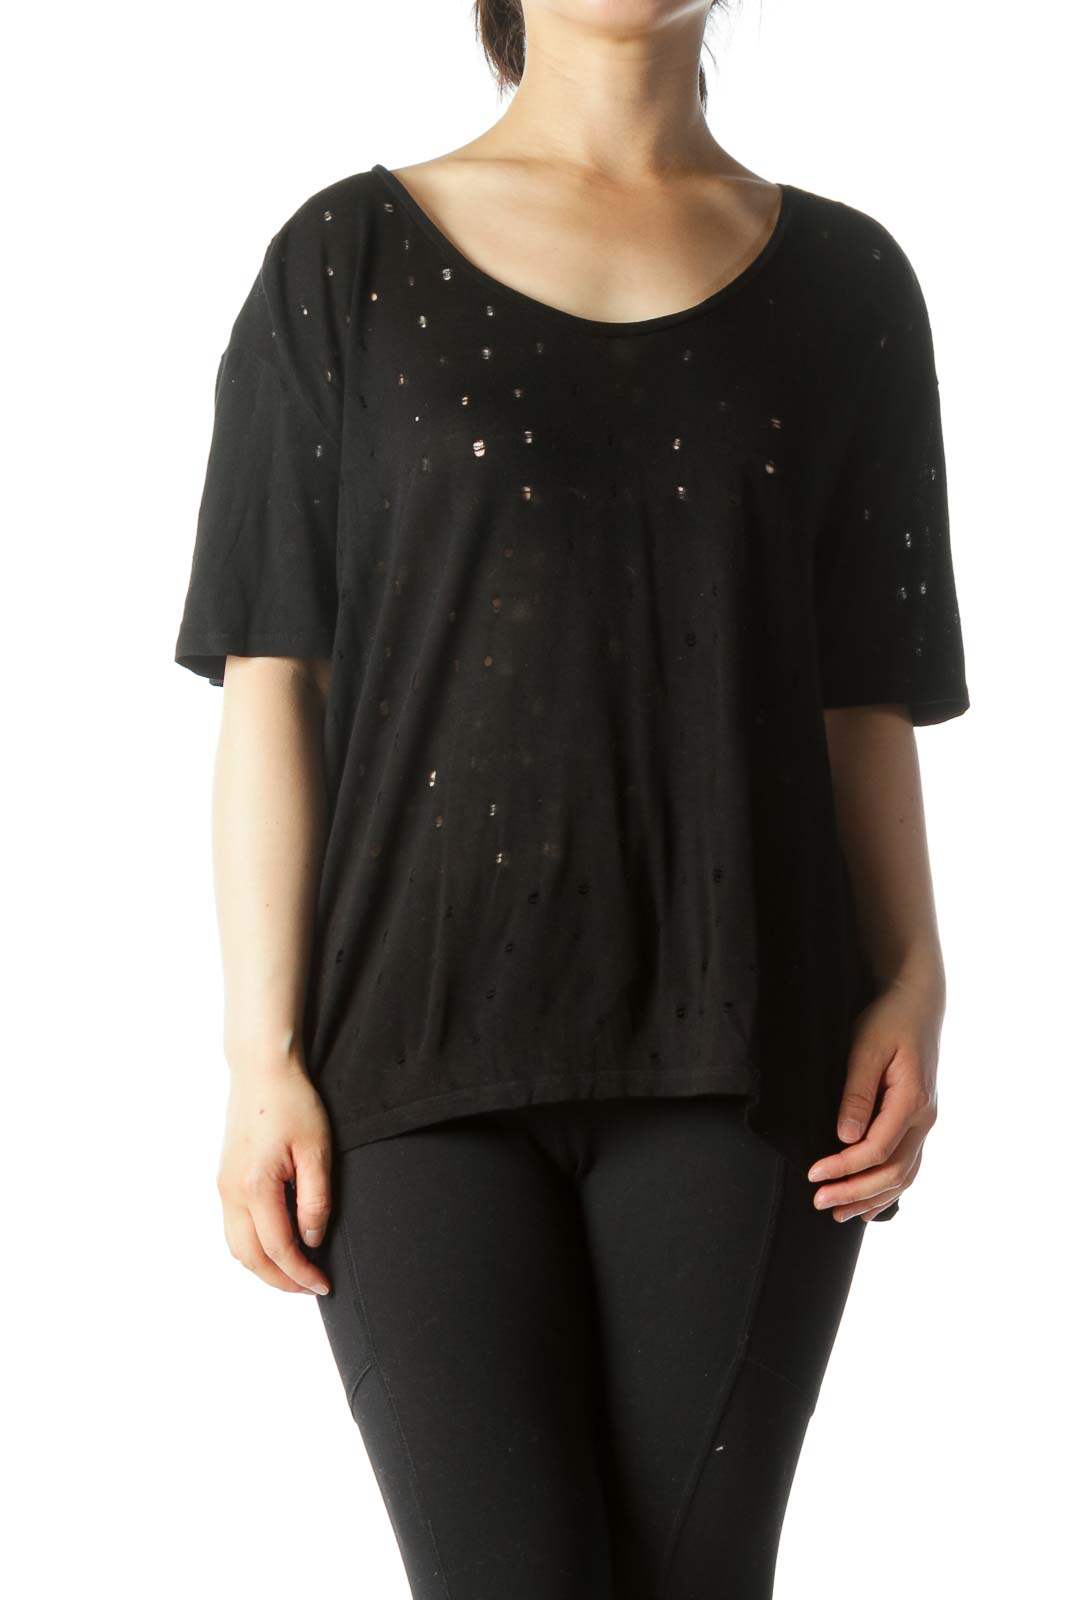 Black Cut-Outs See Through T-Shirt